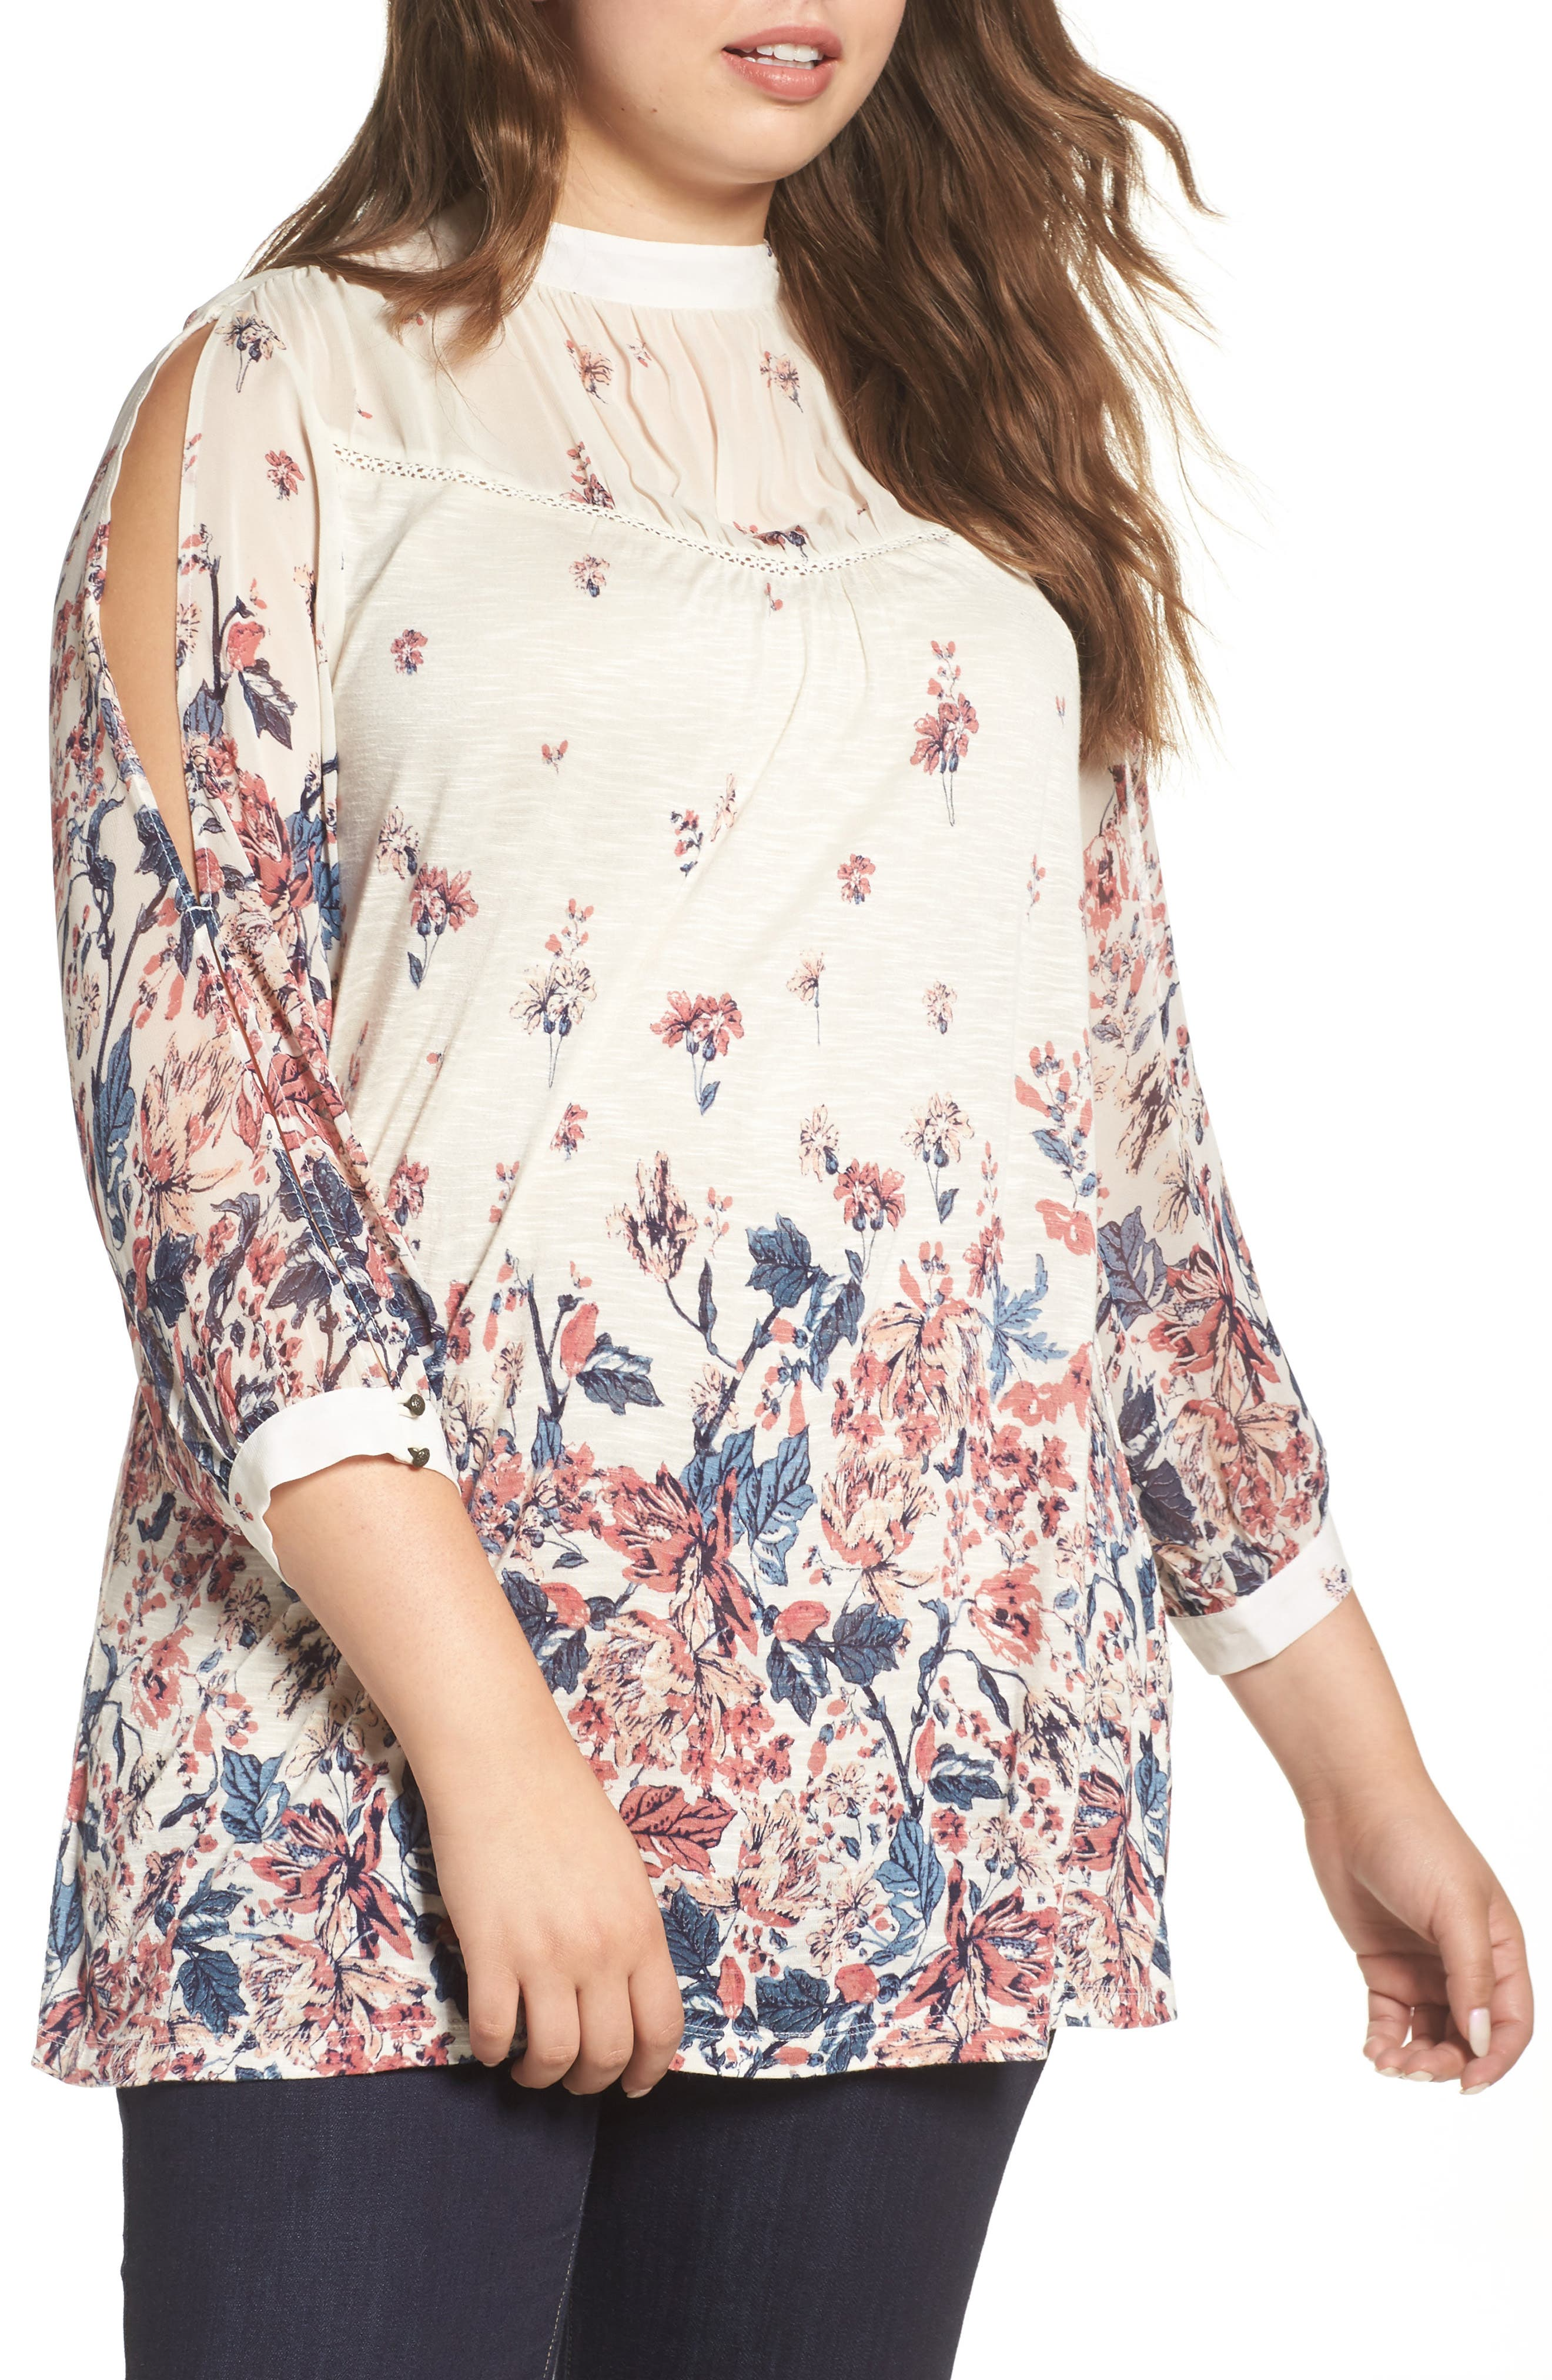 LUCKY BRAND Floral Print Mixed Media Top